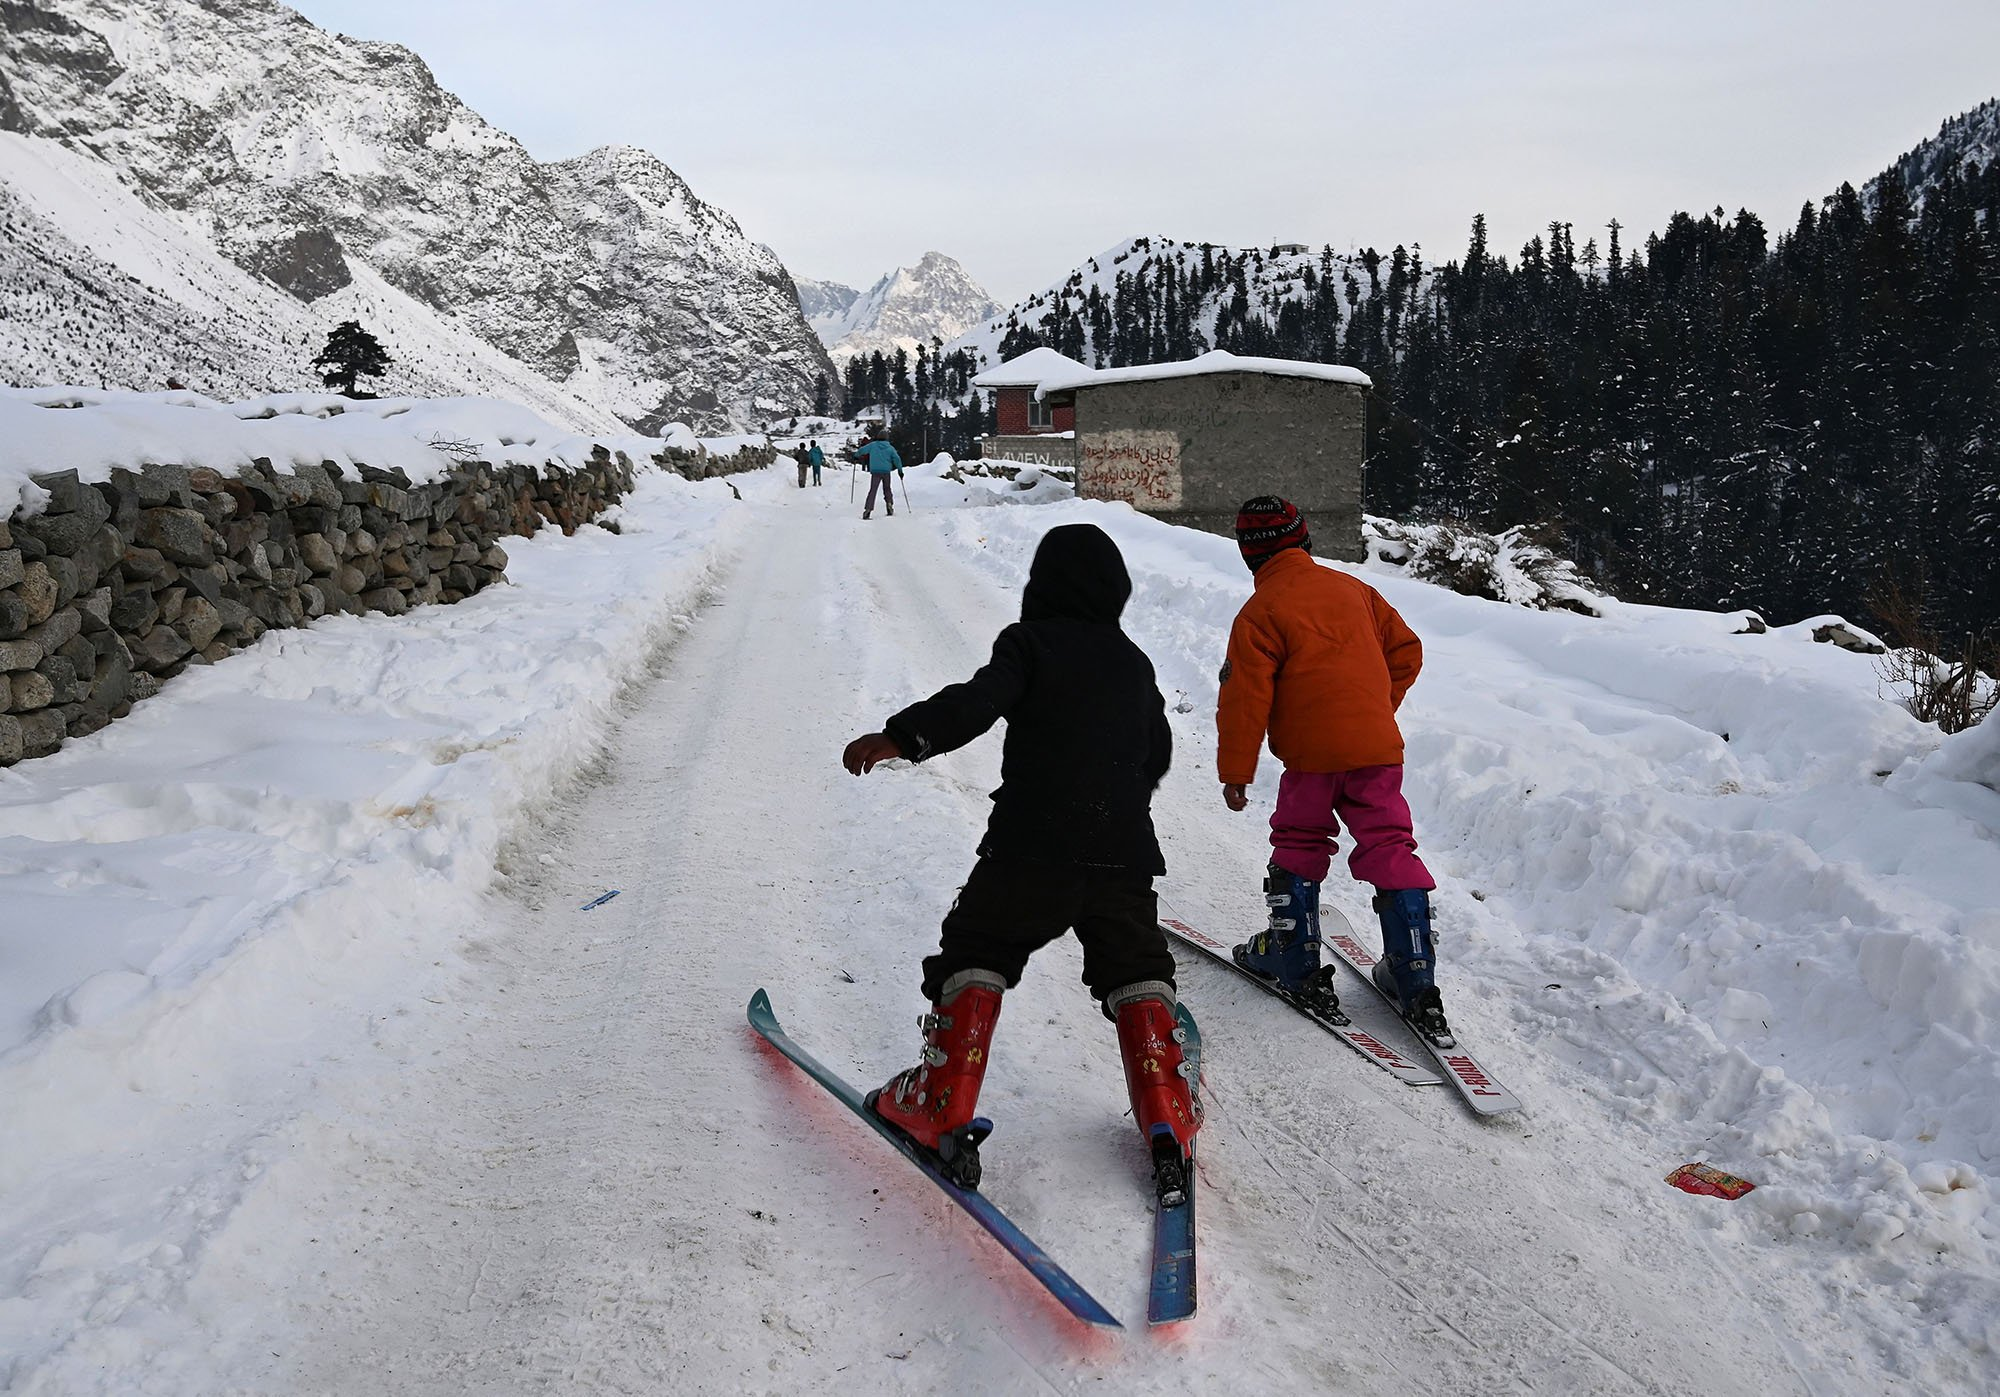 In this picture taken on January 29, 2019, Pakistani children ski on a snow-covered street next to their homes near the slopes where the CAS Karakoram International Alpine Ski Cup was taking place at the Pakistan Air Force-owned and operated Naltar Ski Resort, some 25km north of Gilgit in Pakistan´s remote mountainous north. Photo AFP